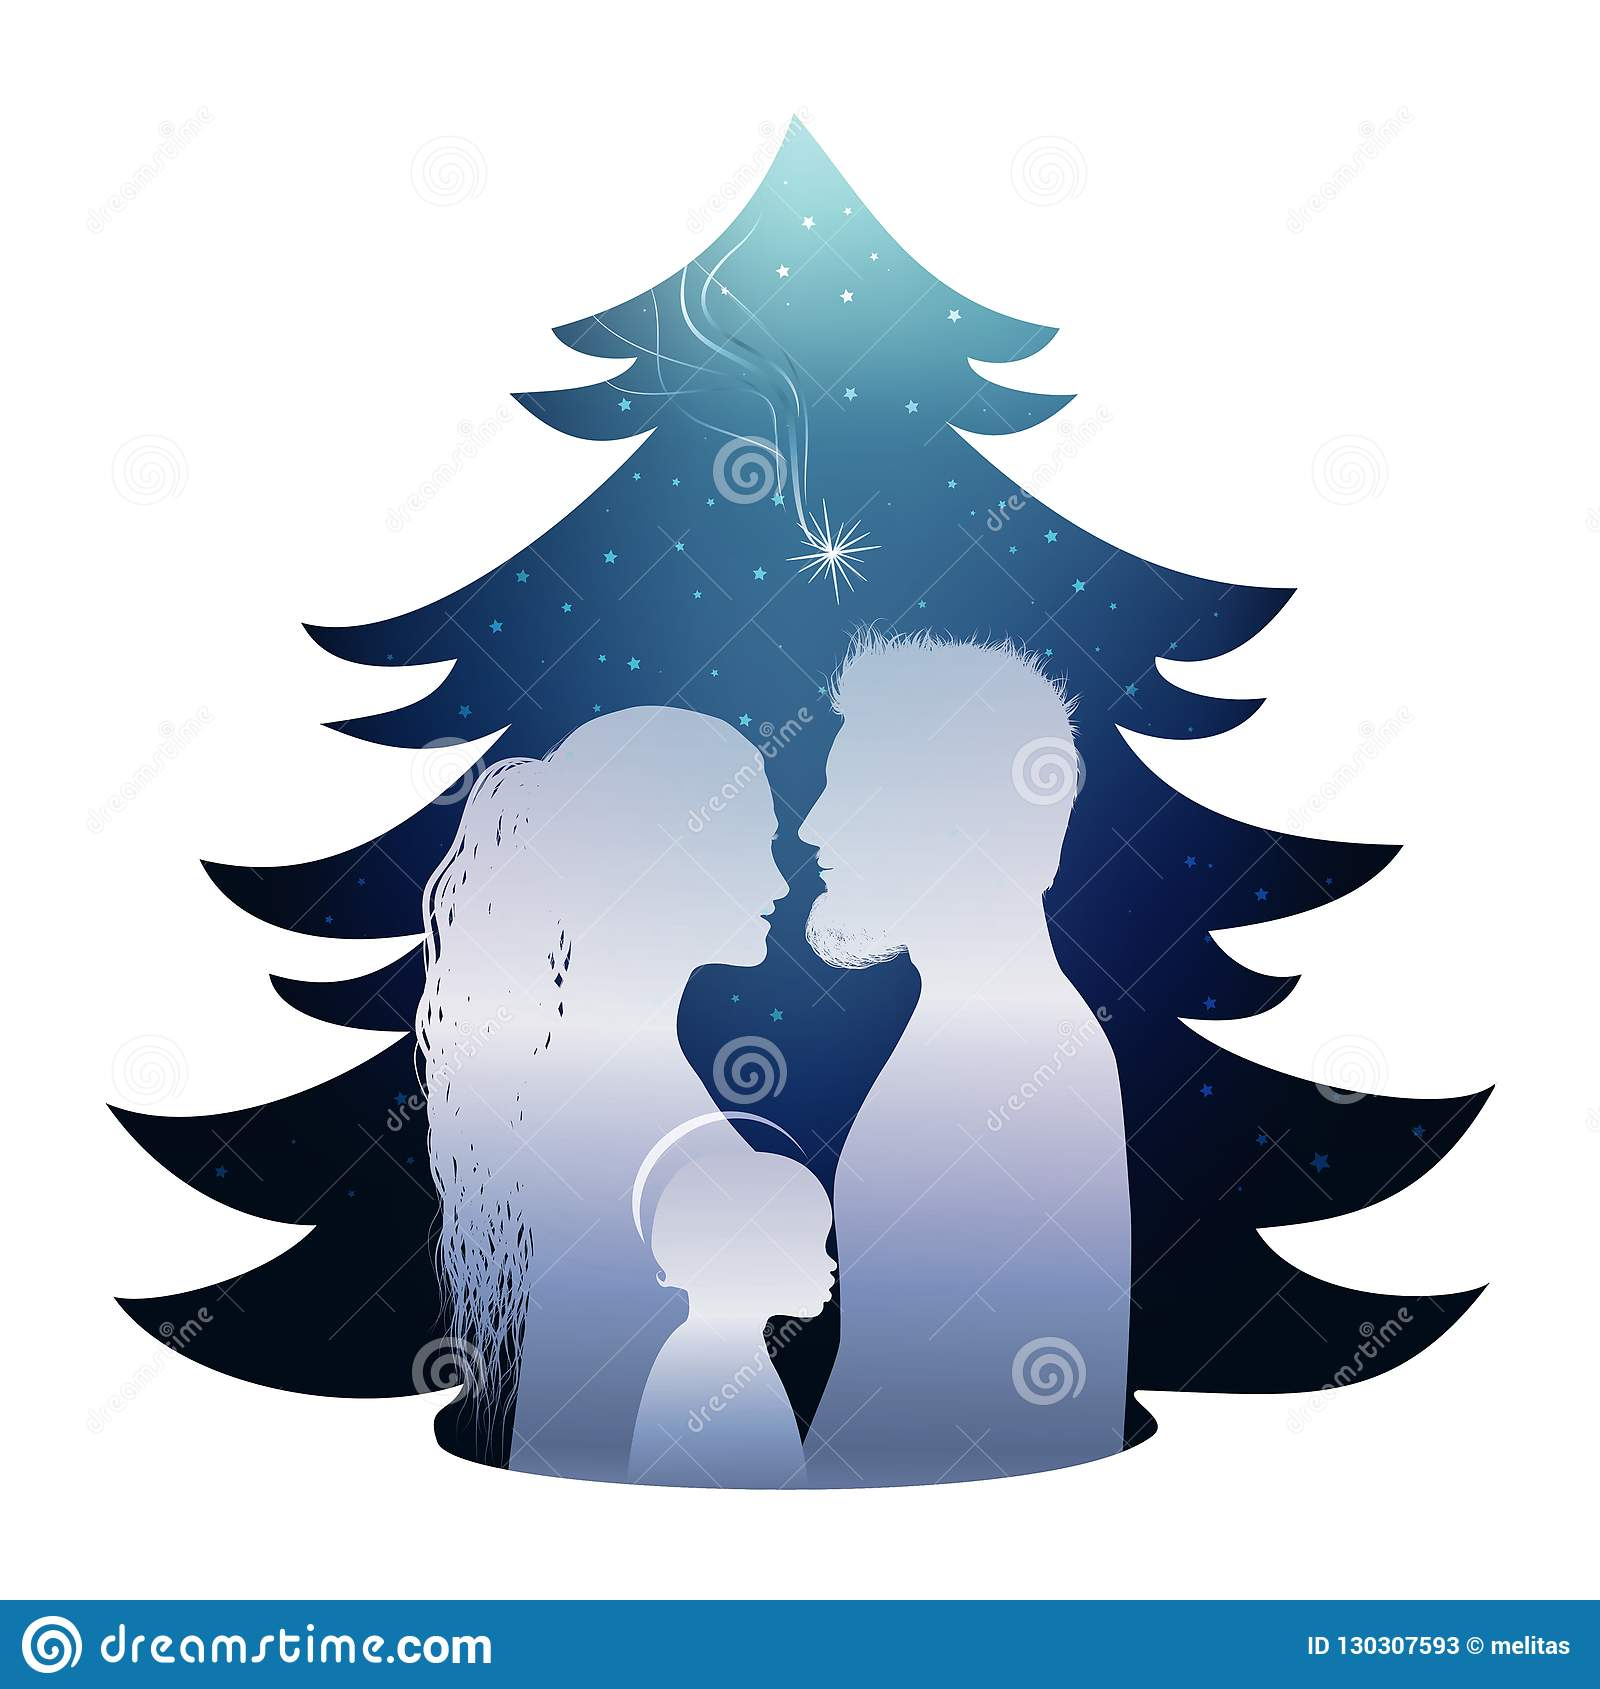 Isolated Christmas tree nativity scene with holy family. Silhouette profile on blue background